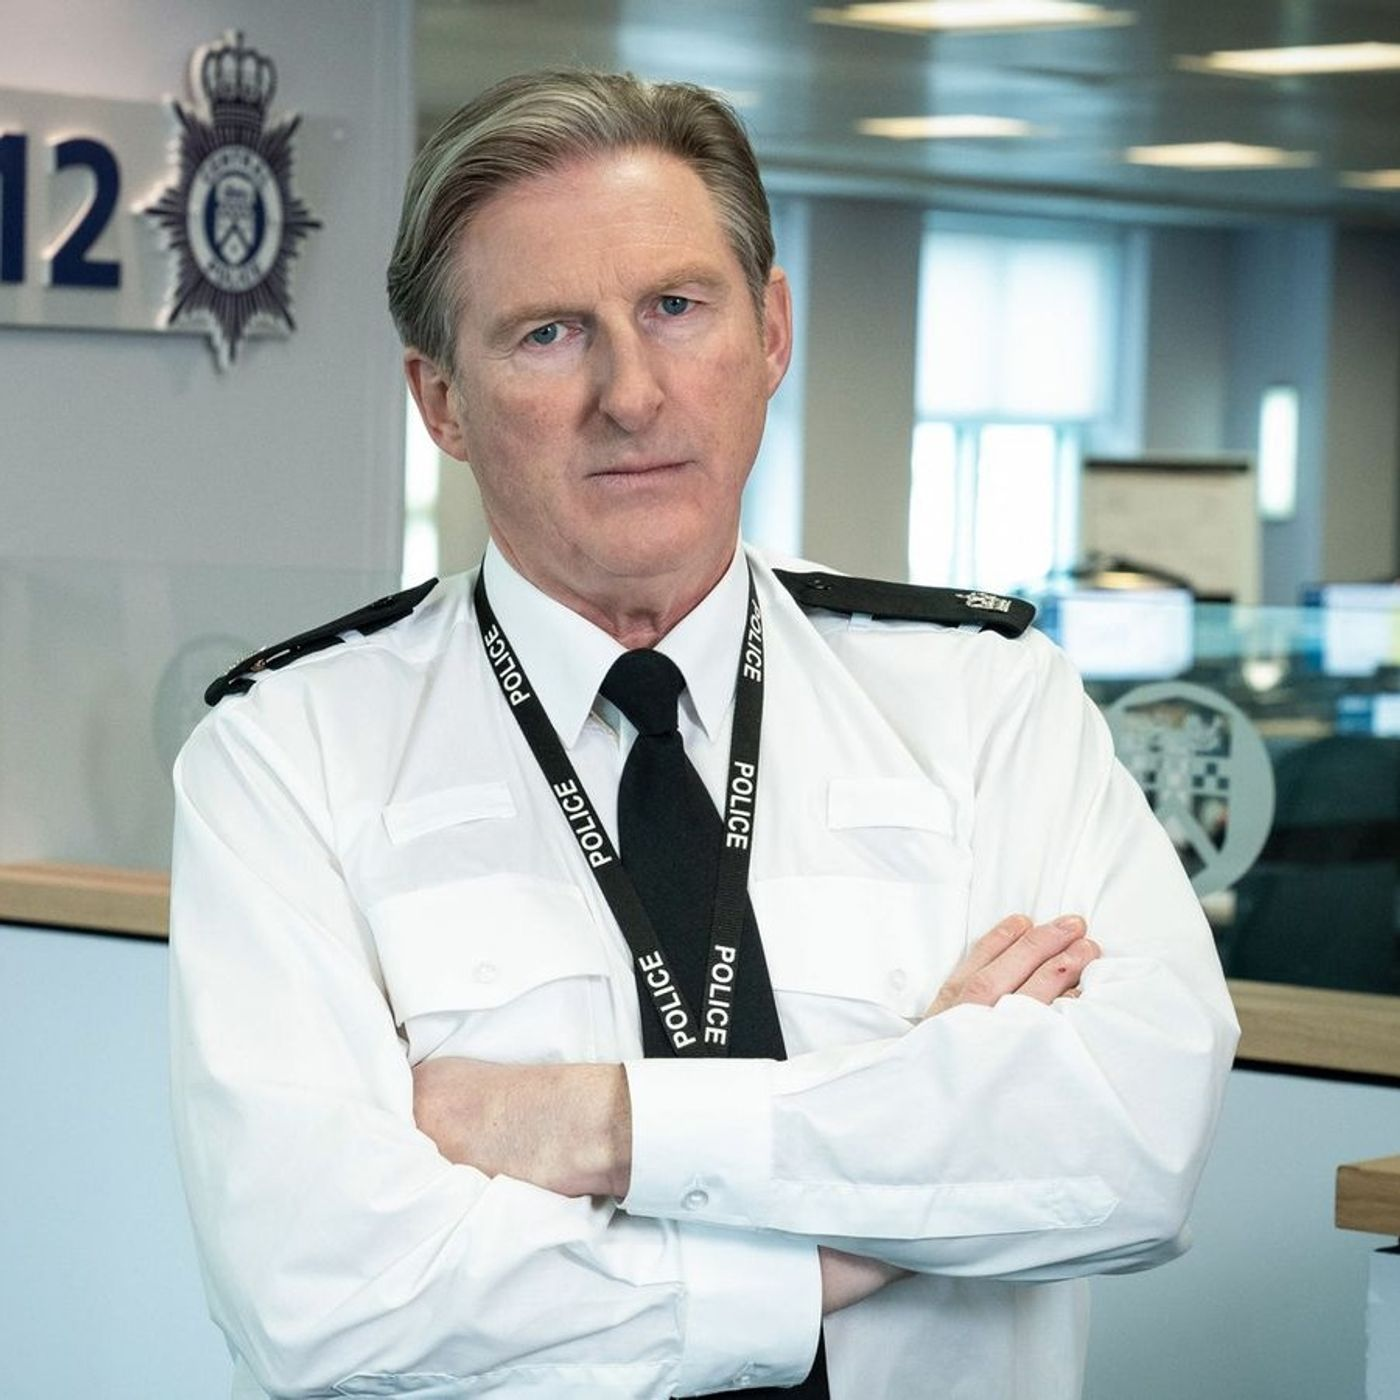 Line of Duty finale, The Pursuit of Love and Oxygen